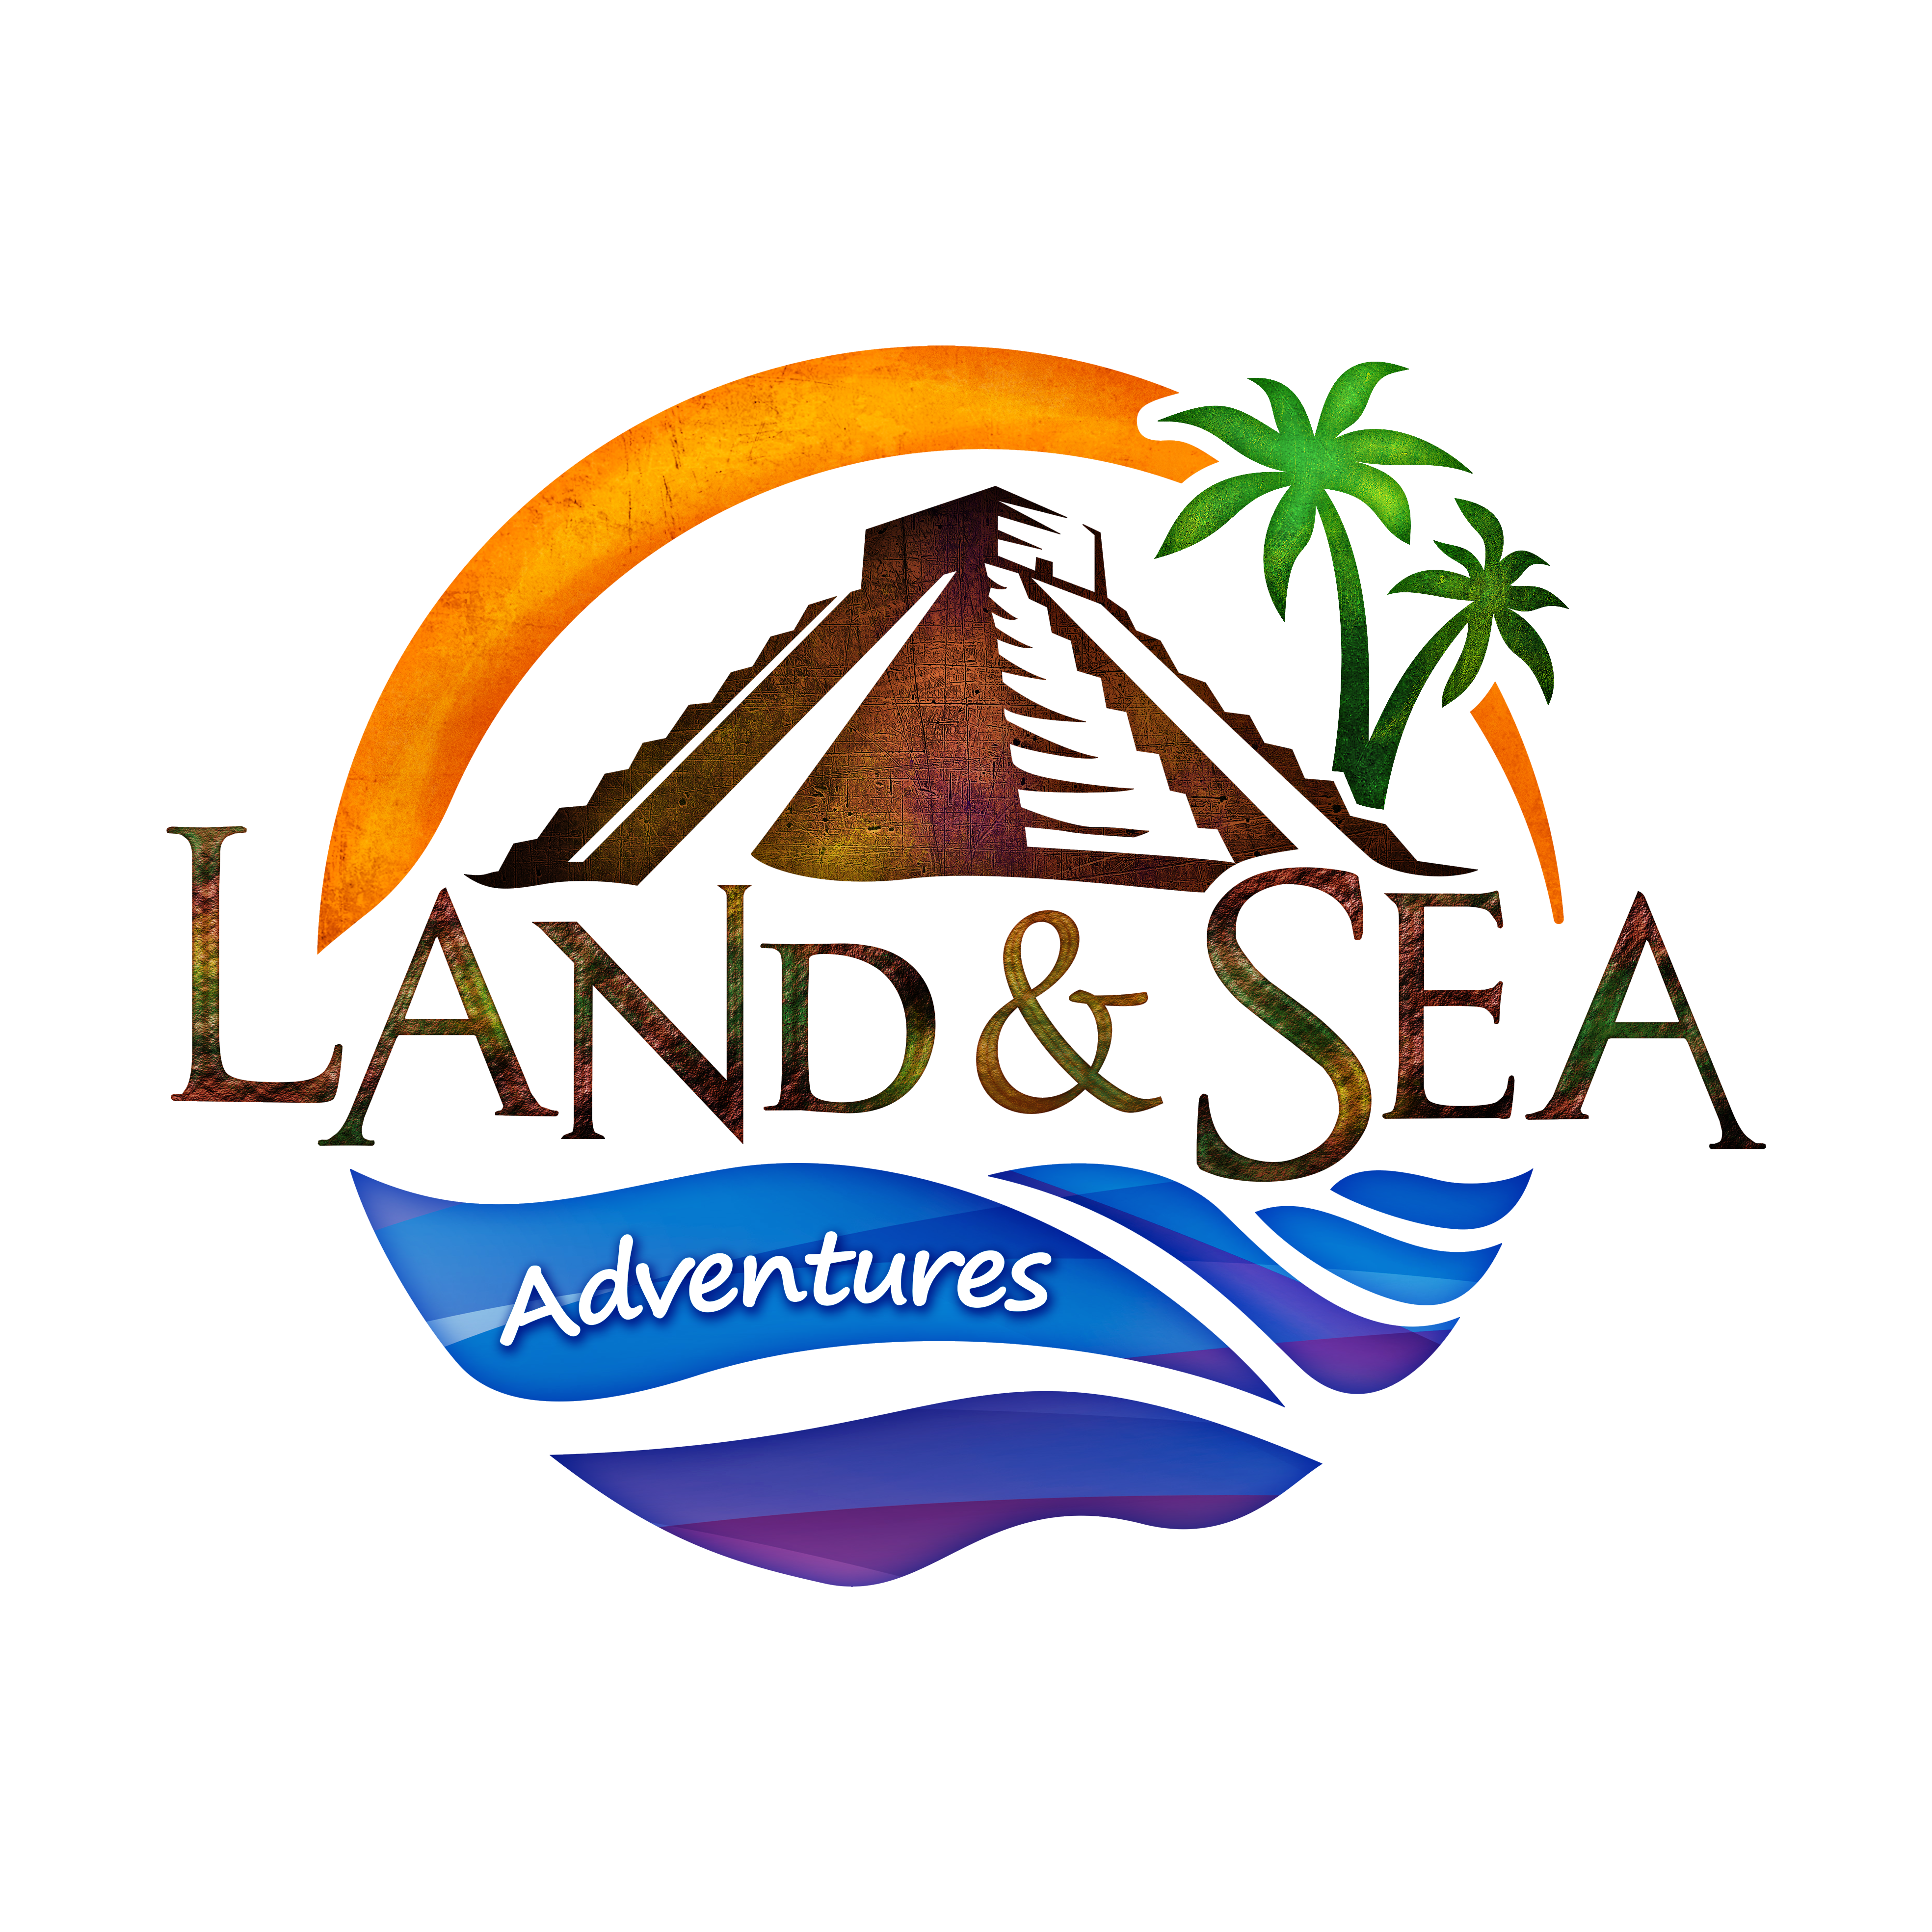 land and sea adventures